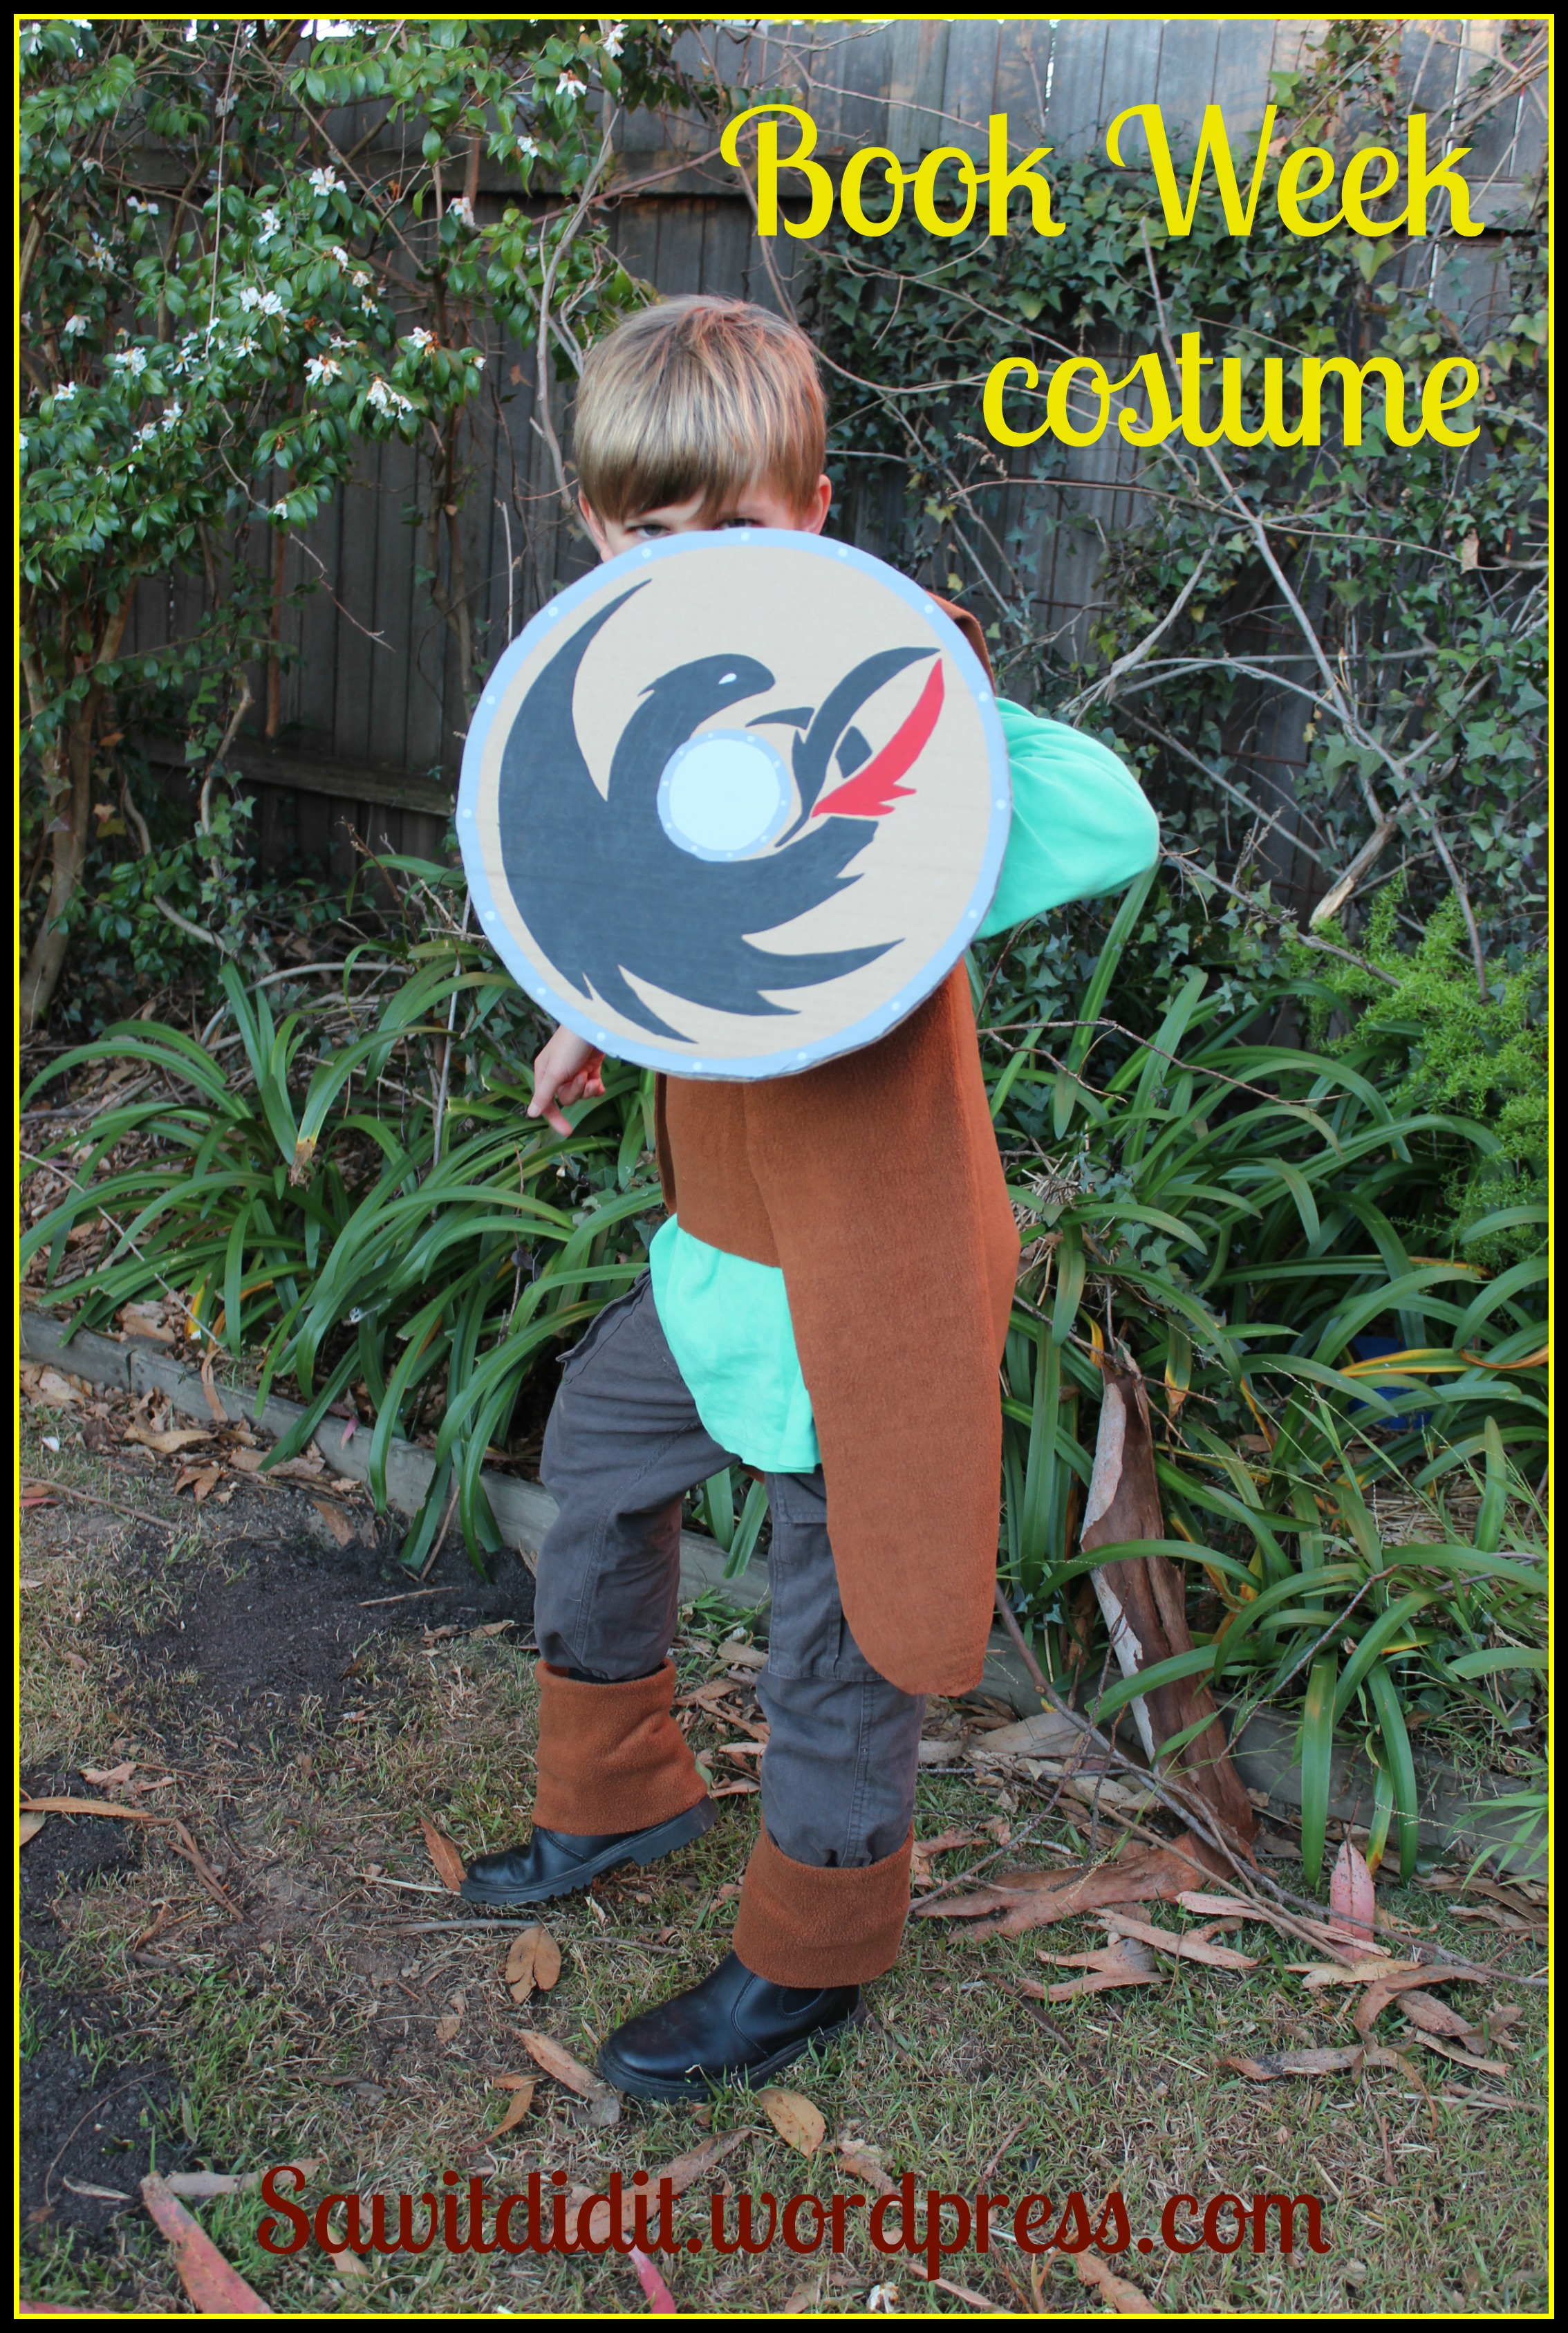 Book week costume hiccup from how to train your dragon saw it hiccup 2 ccuart Gallery